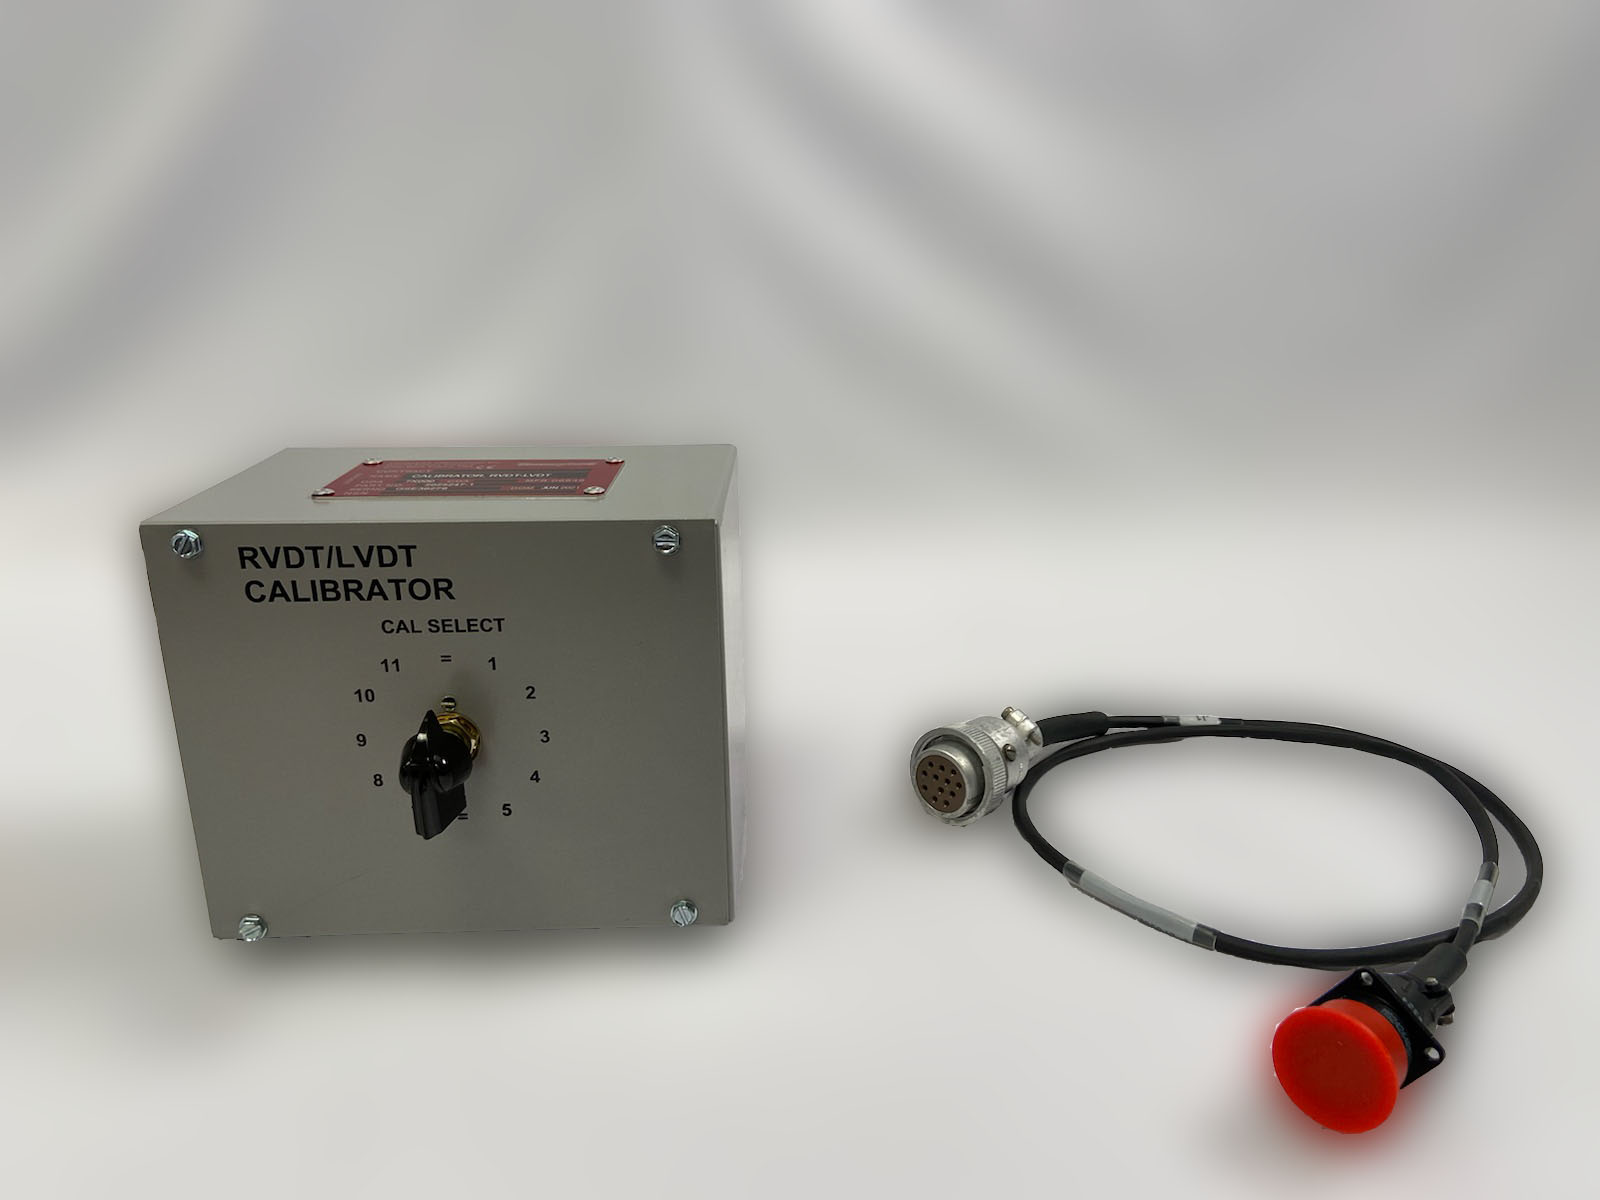 RVDT/LVDT Calibrator box and chord